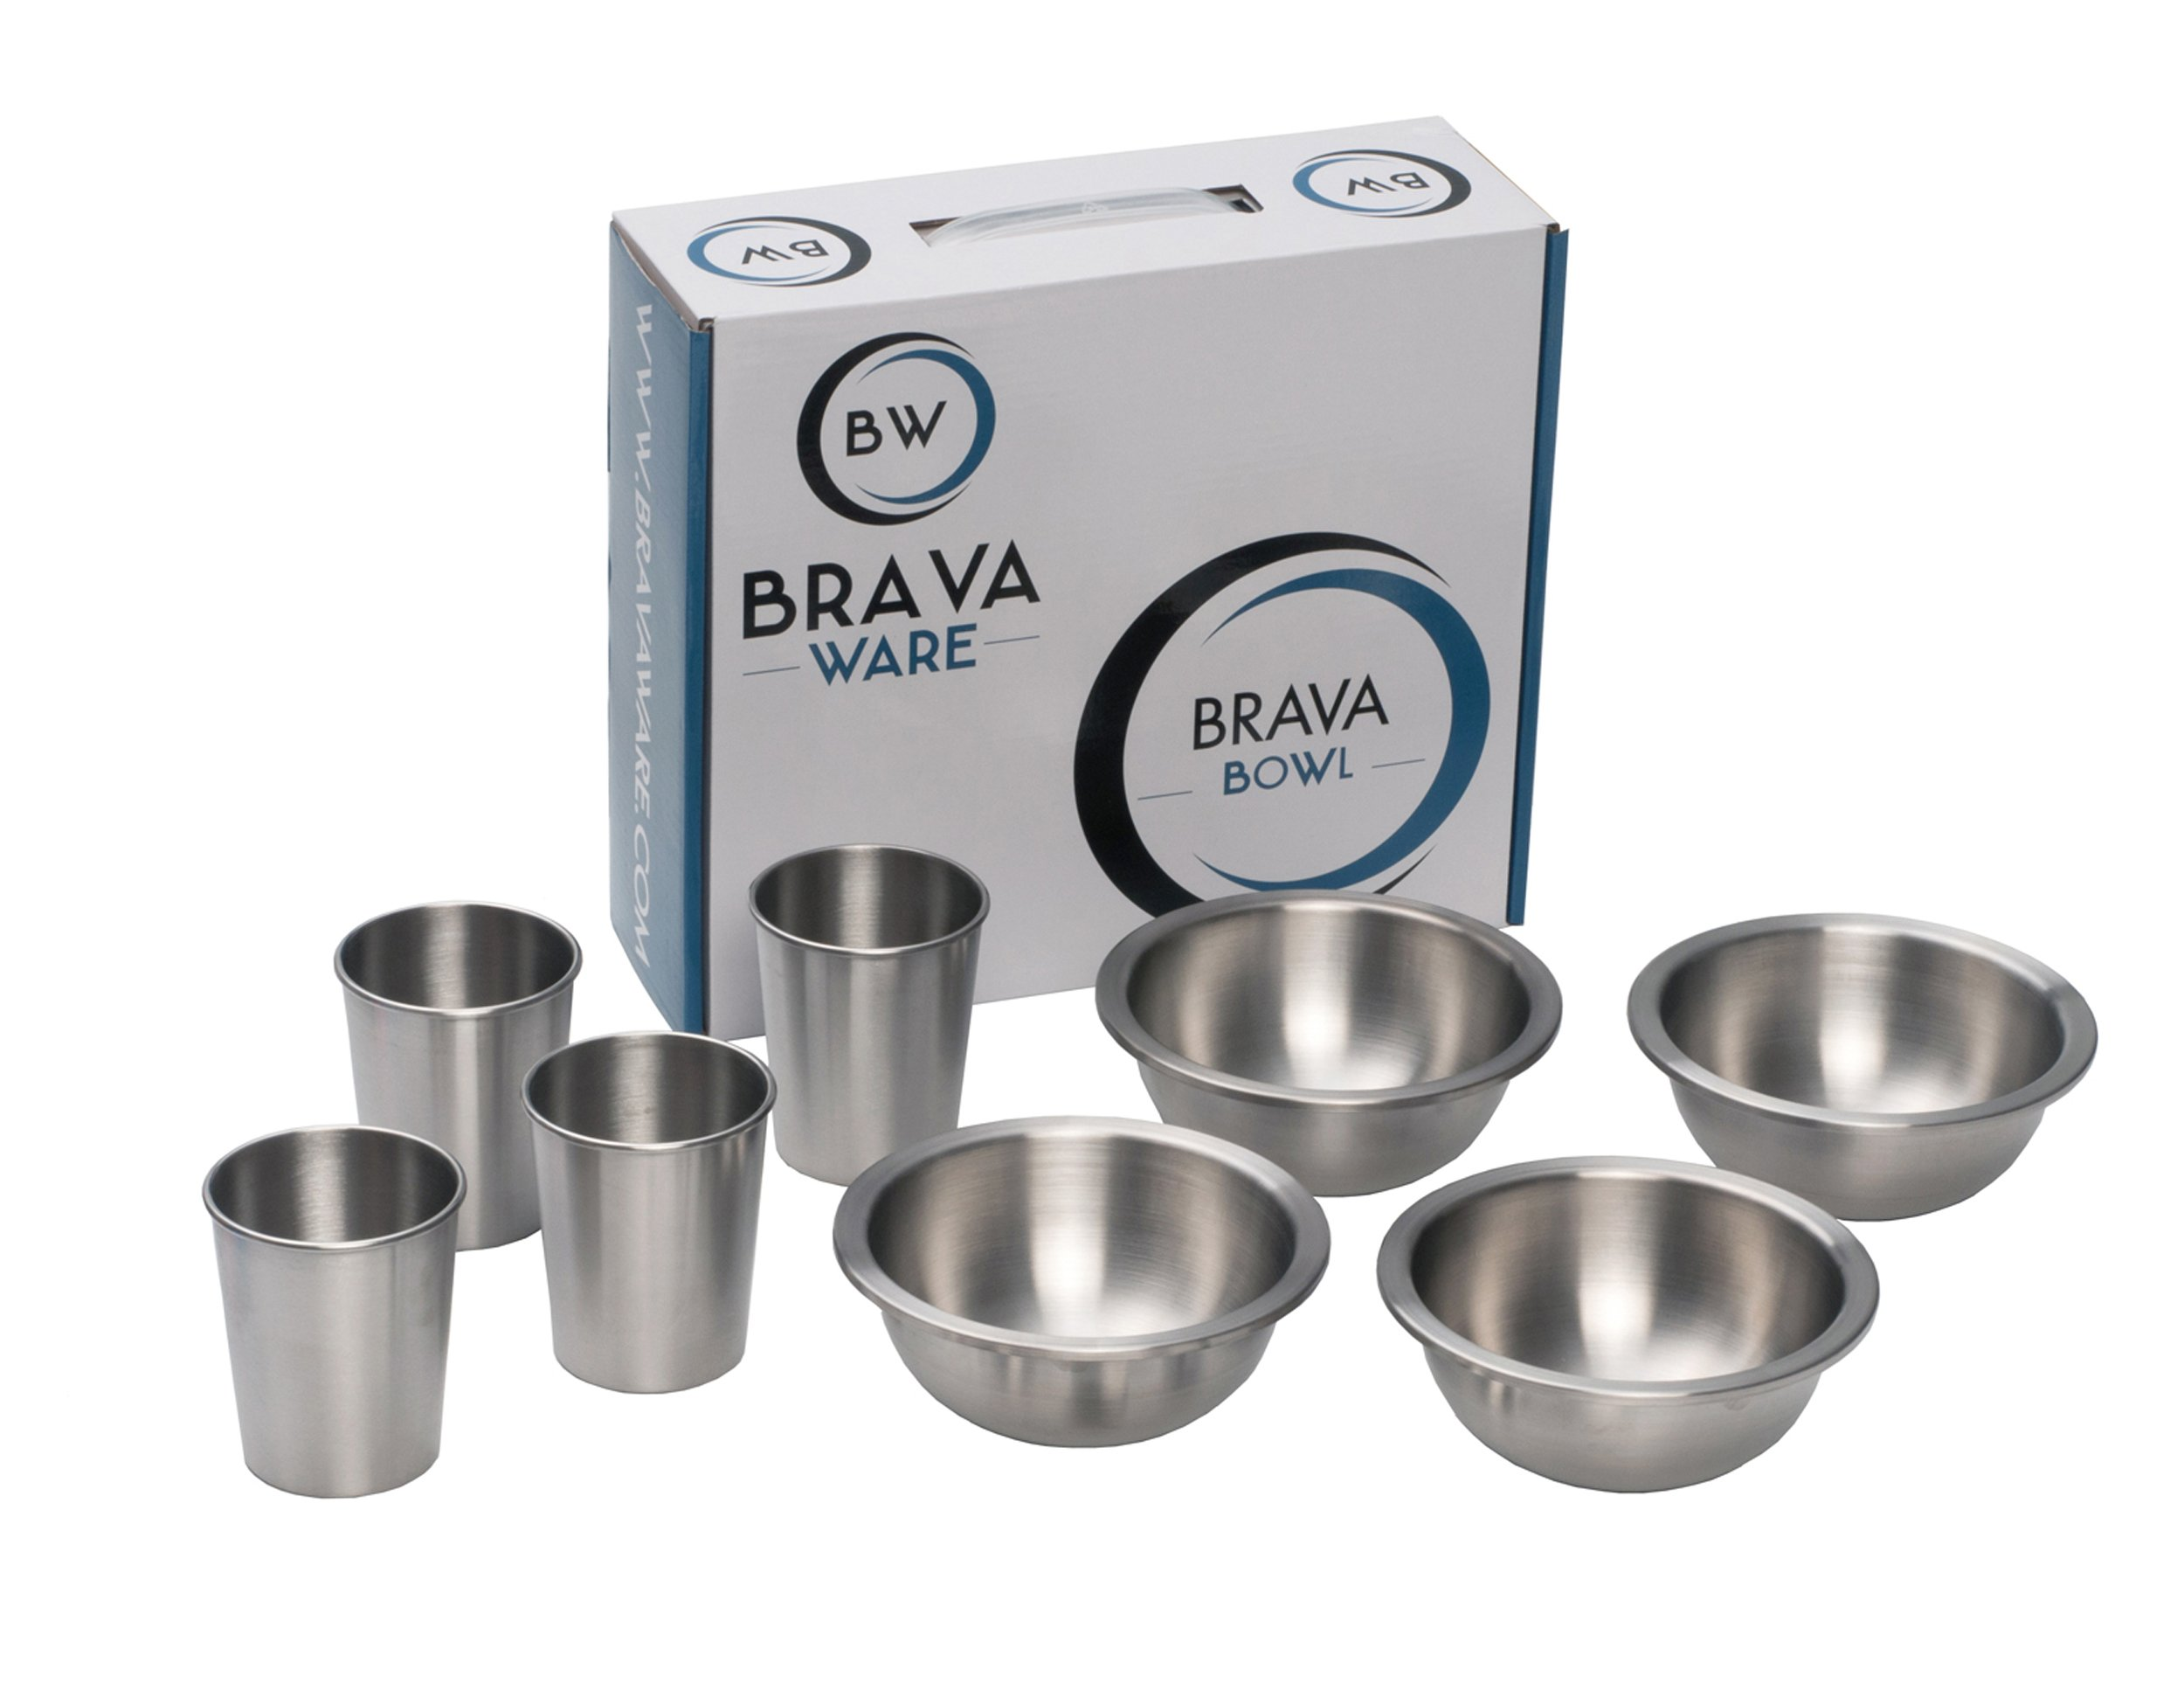 Stainless Steel Bowls and Cups 8 Piece Set: 4 Stainless Steel Bowls and 4 Stainless Steel Cups for Children Toddlers and Babies - Stainless Steel Cup and Bowl Set for Camping, Picnics and RV